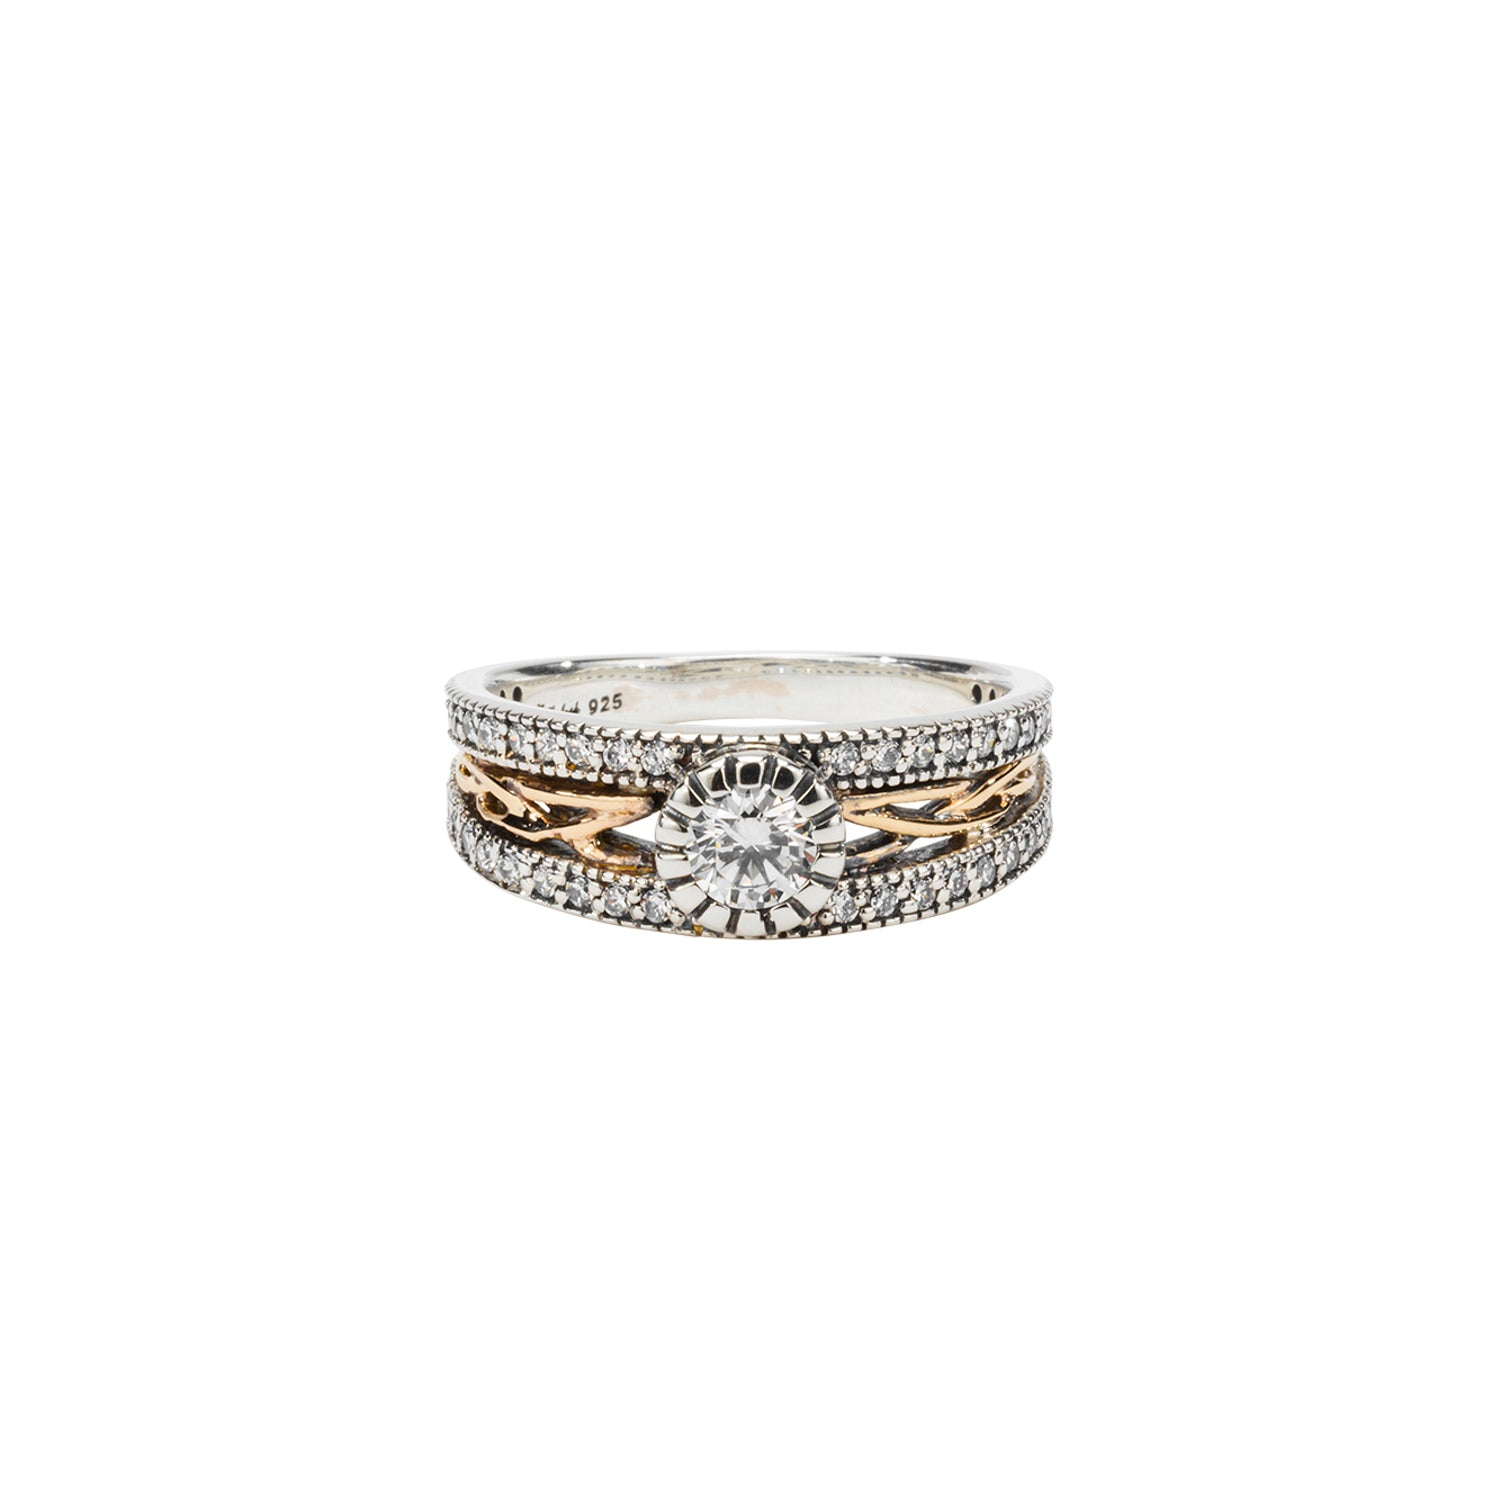 Ring Bands Oxidized 10k Yellow CZ Brave Heart Ring (Tapered) from welch and company jewelers near syracuse ny